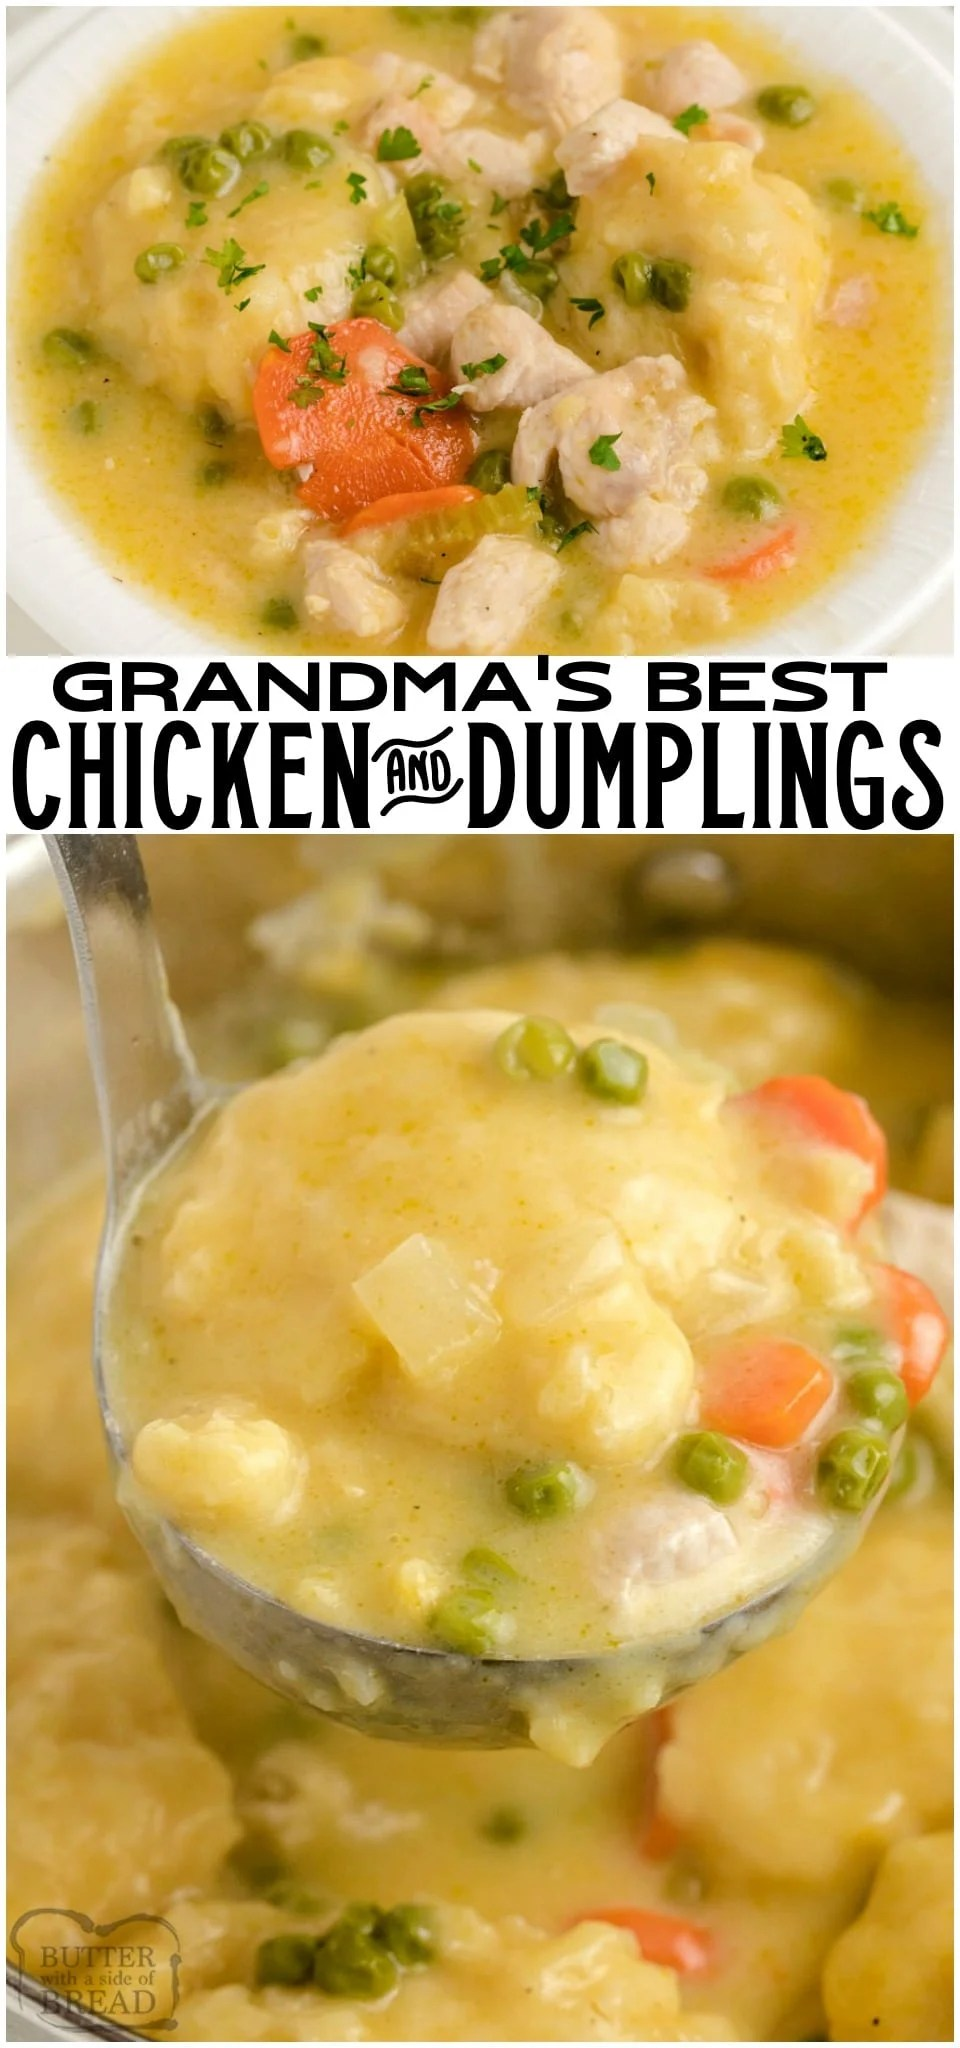 Chicken and Dumplings recipe made with juicy chicken, fresh vegetables and homemade biscuit dumplings. Seriously THE BEST homemade dumplings you've ever tasted. Simple tips to make the EASIEST chicken dumplings dinner ever.